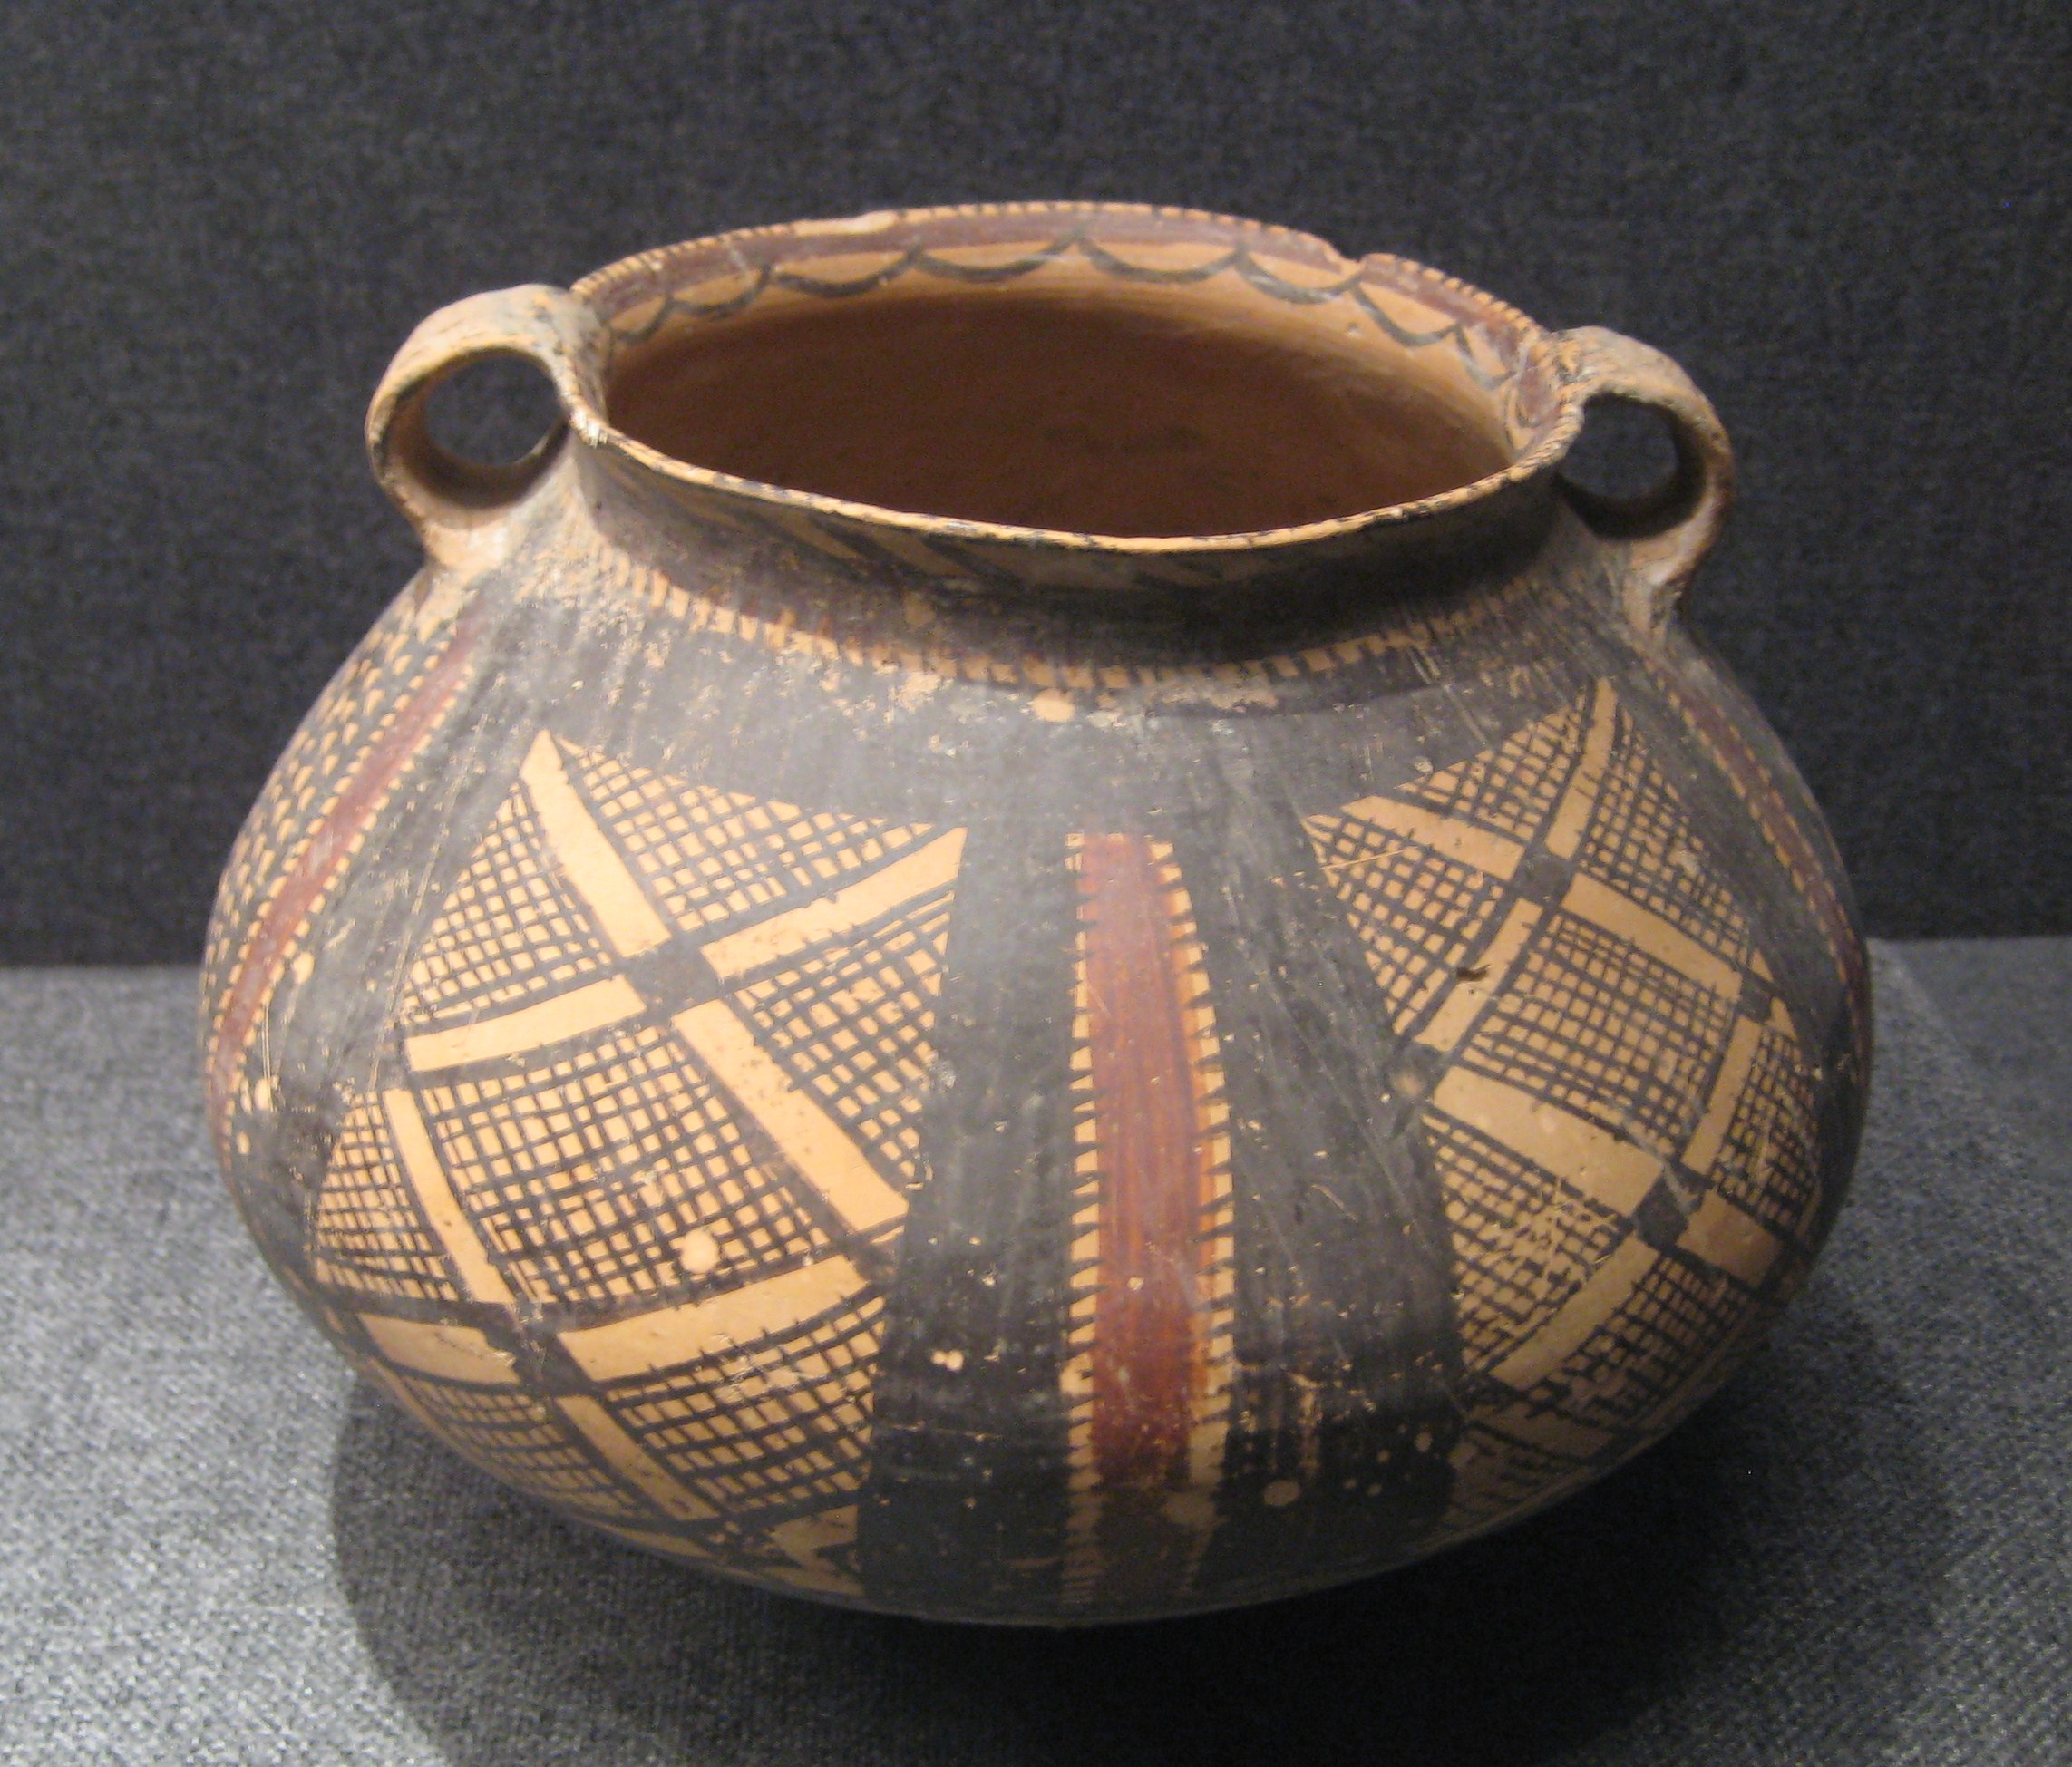 Http Commons Wikimedia Org Wiki File Banshan Painted Pottery Pot 1 Jpg